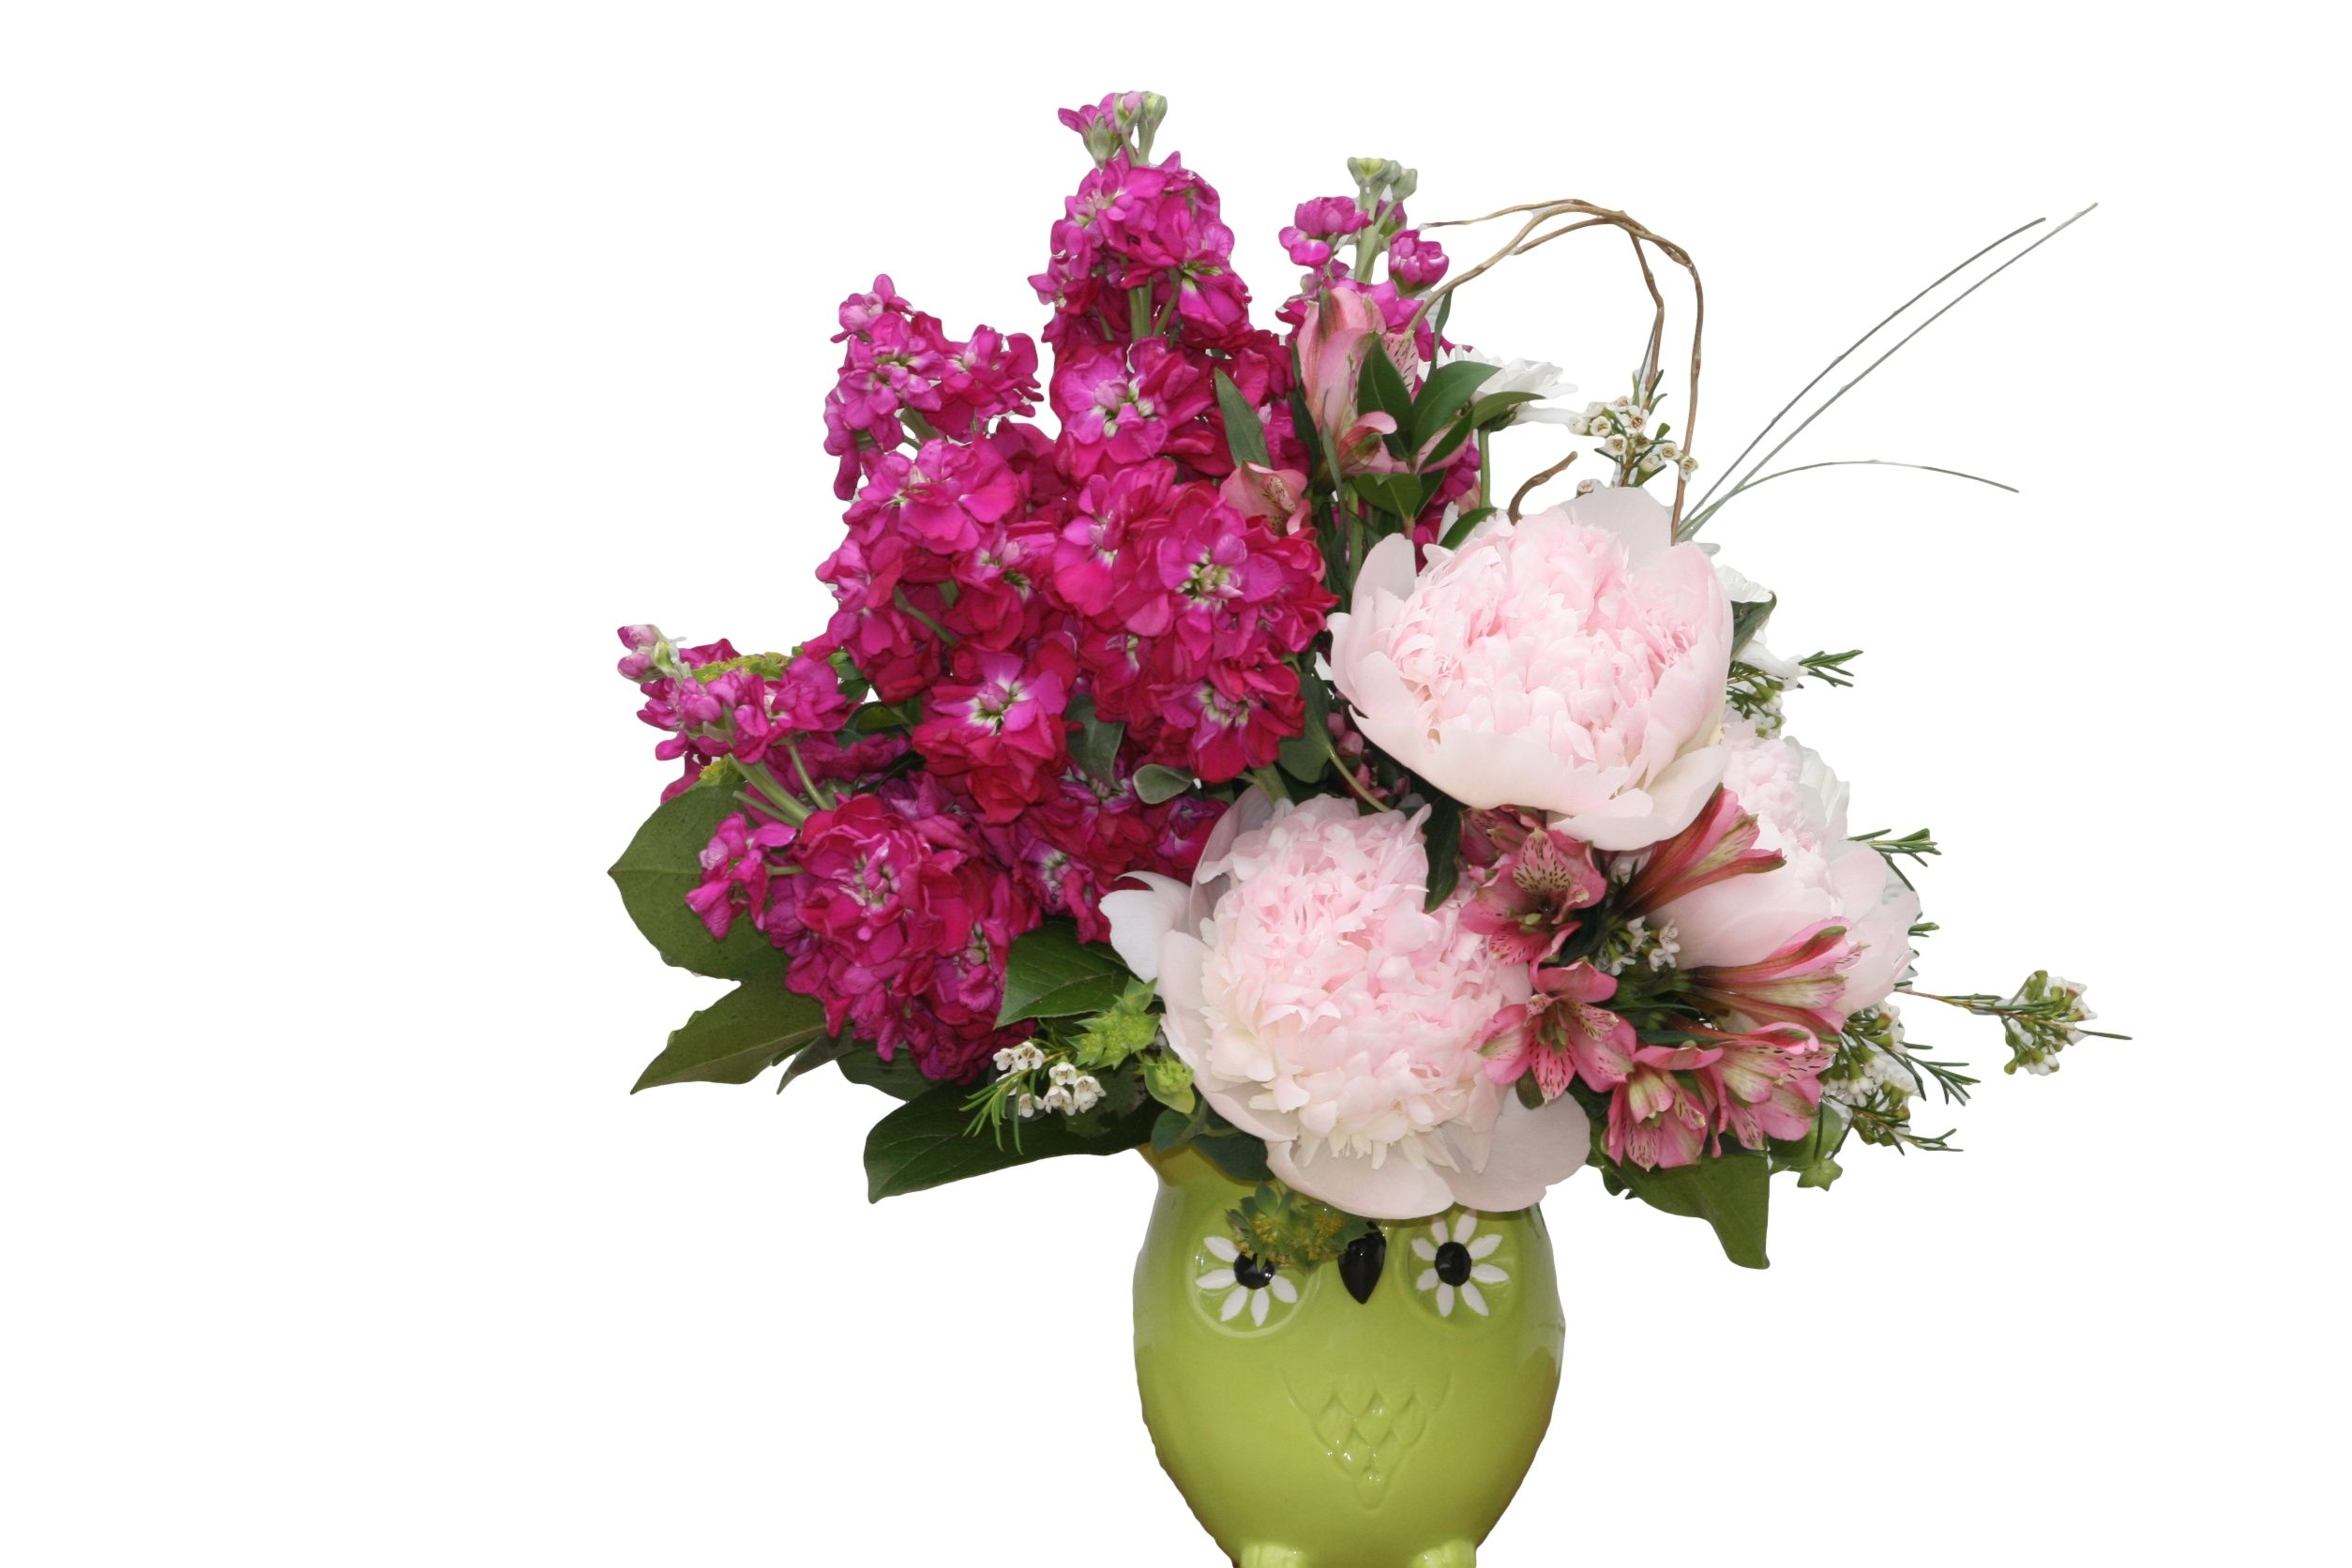 Pink peonies and other pink accents in a keepsake ceramic owl buy flowers from your local florist in riverside ca willow branch florist of riverside will provide all your floral and gift needs in riverside ca izmirmasajfo